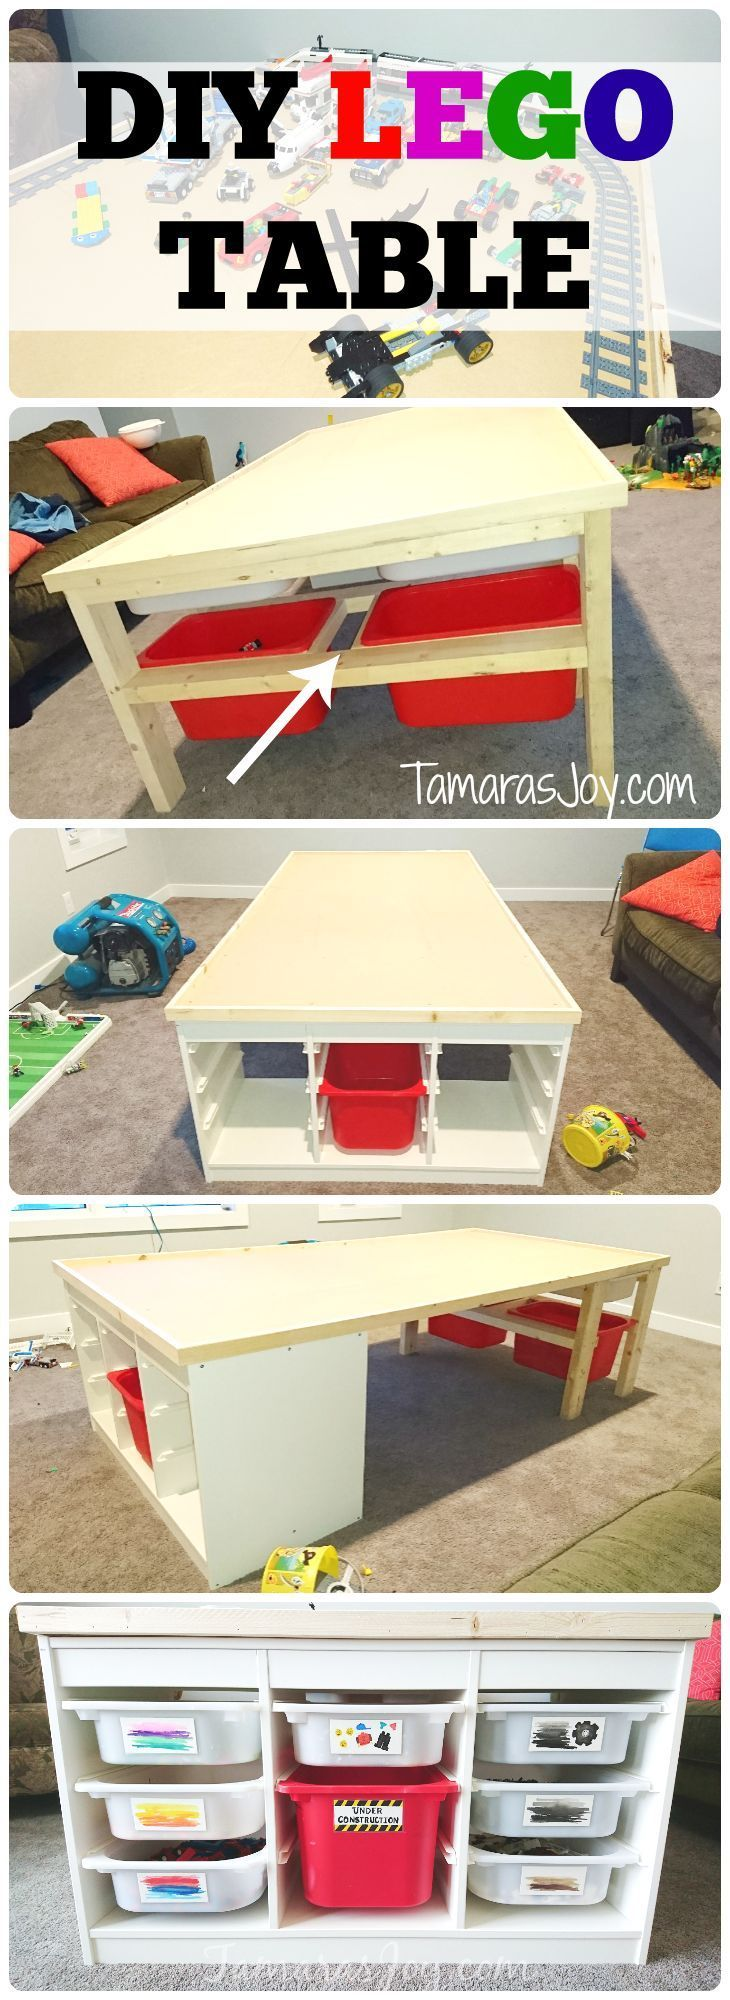 DIY LEGO TABLE - IKEA HACK ⋆ Tamara's Joy